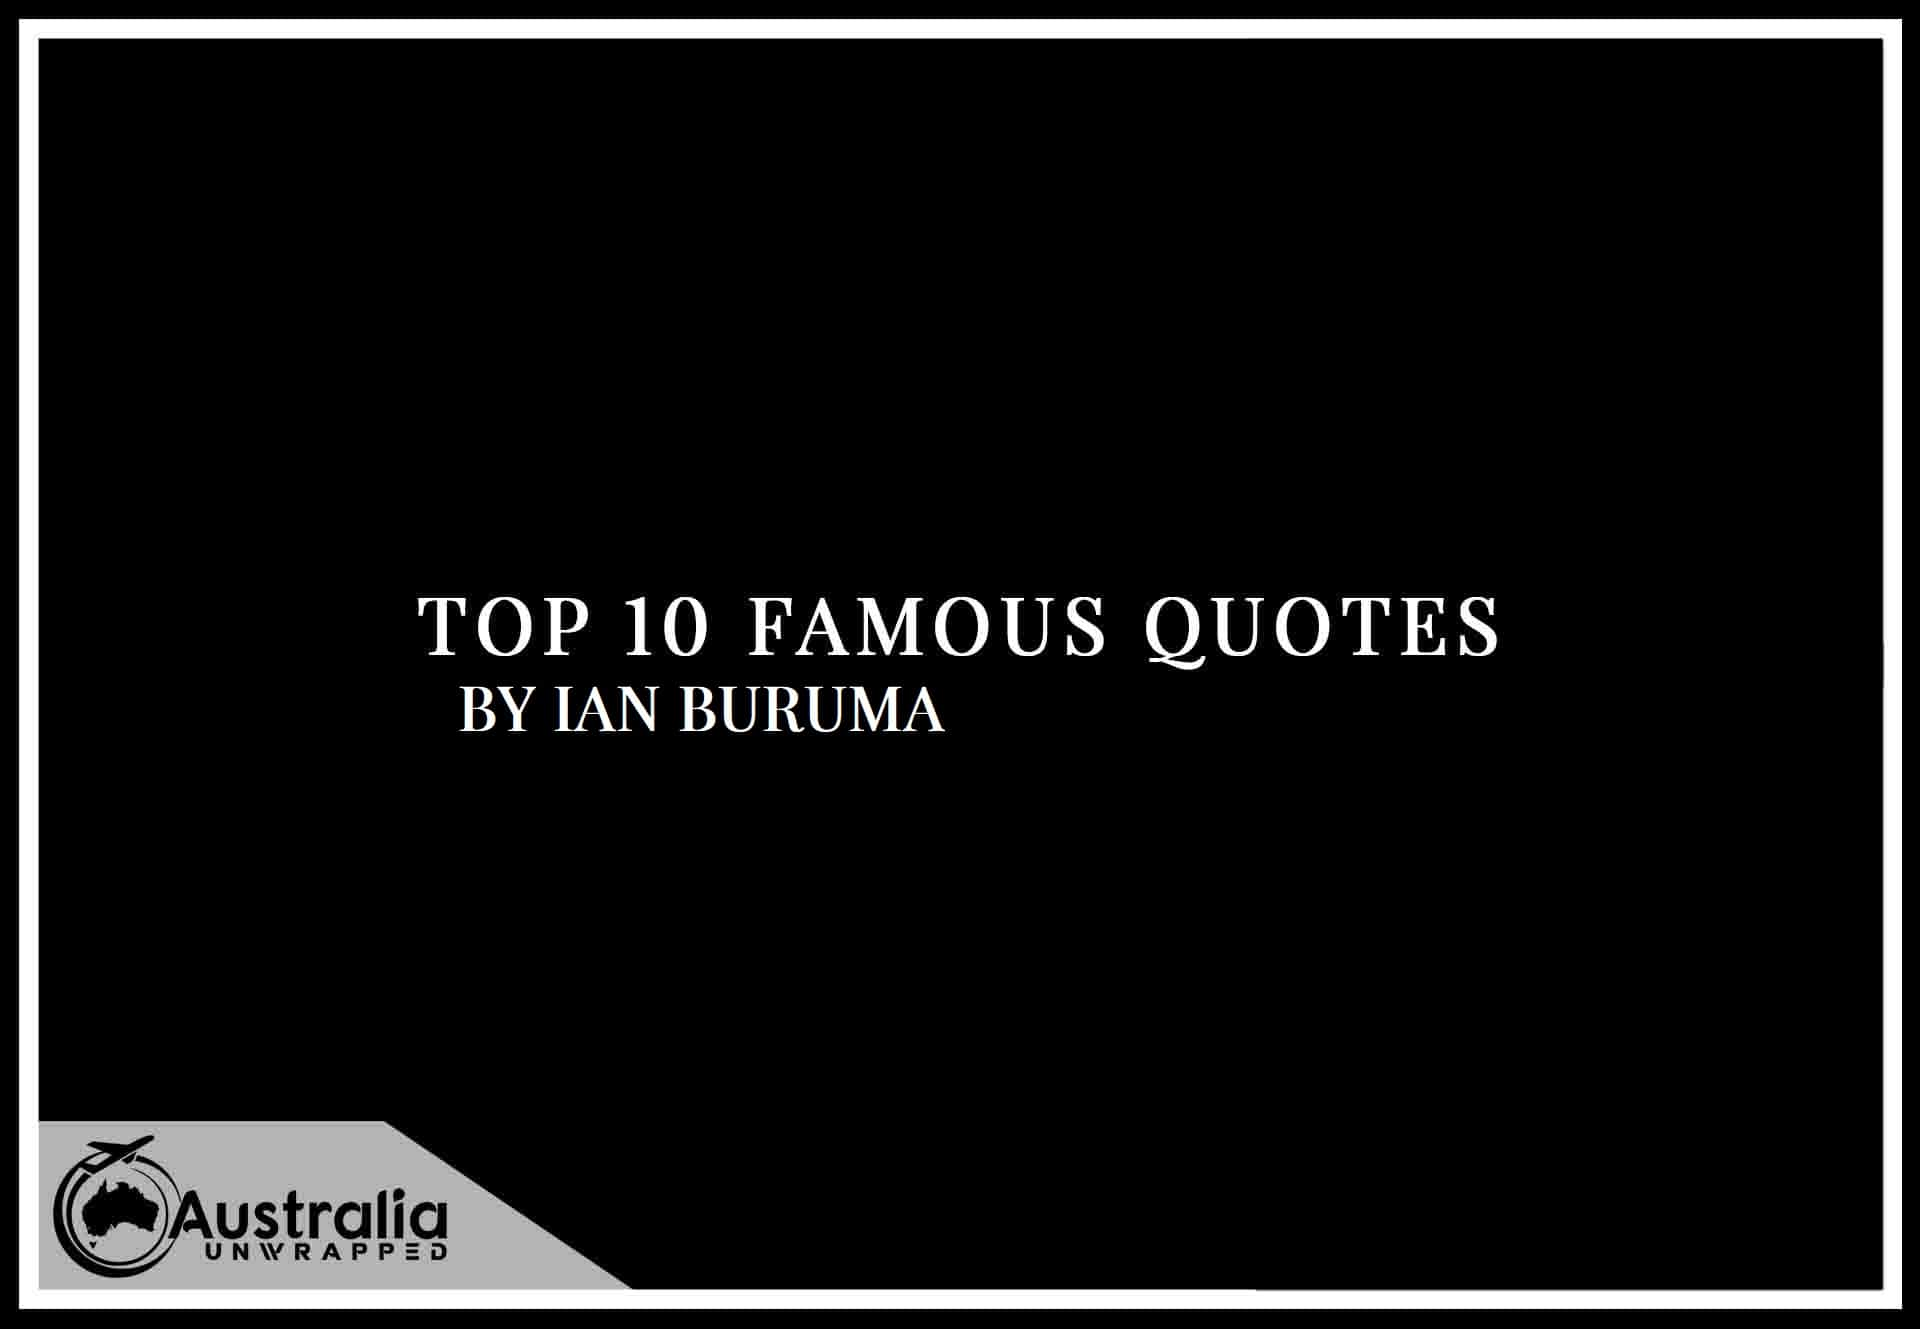 Top 10 Famous Quotes by Author Ian Buruma